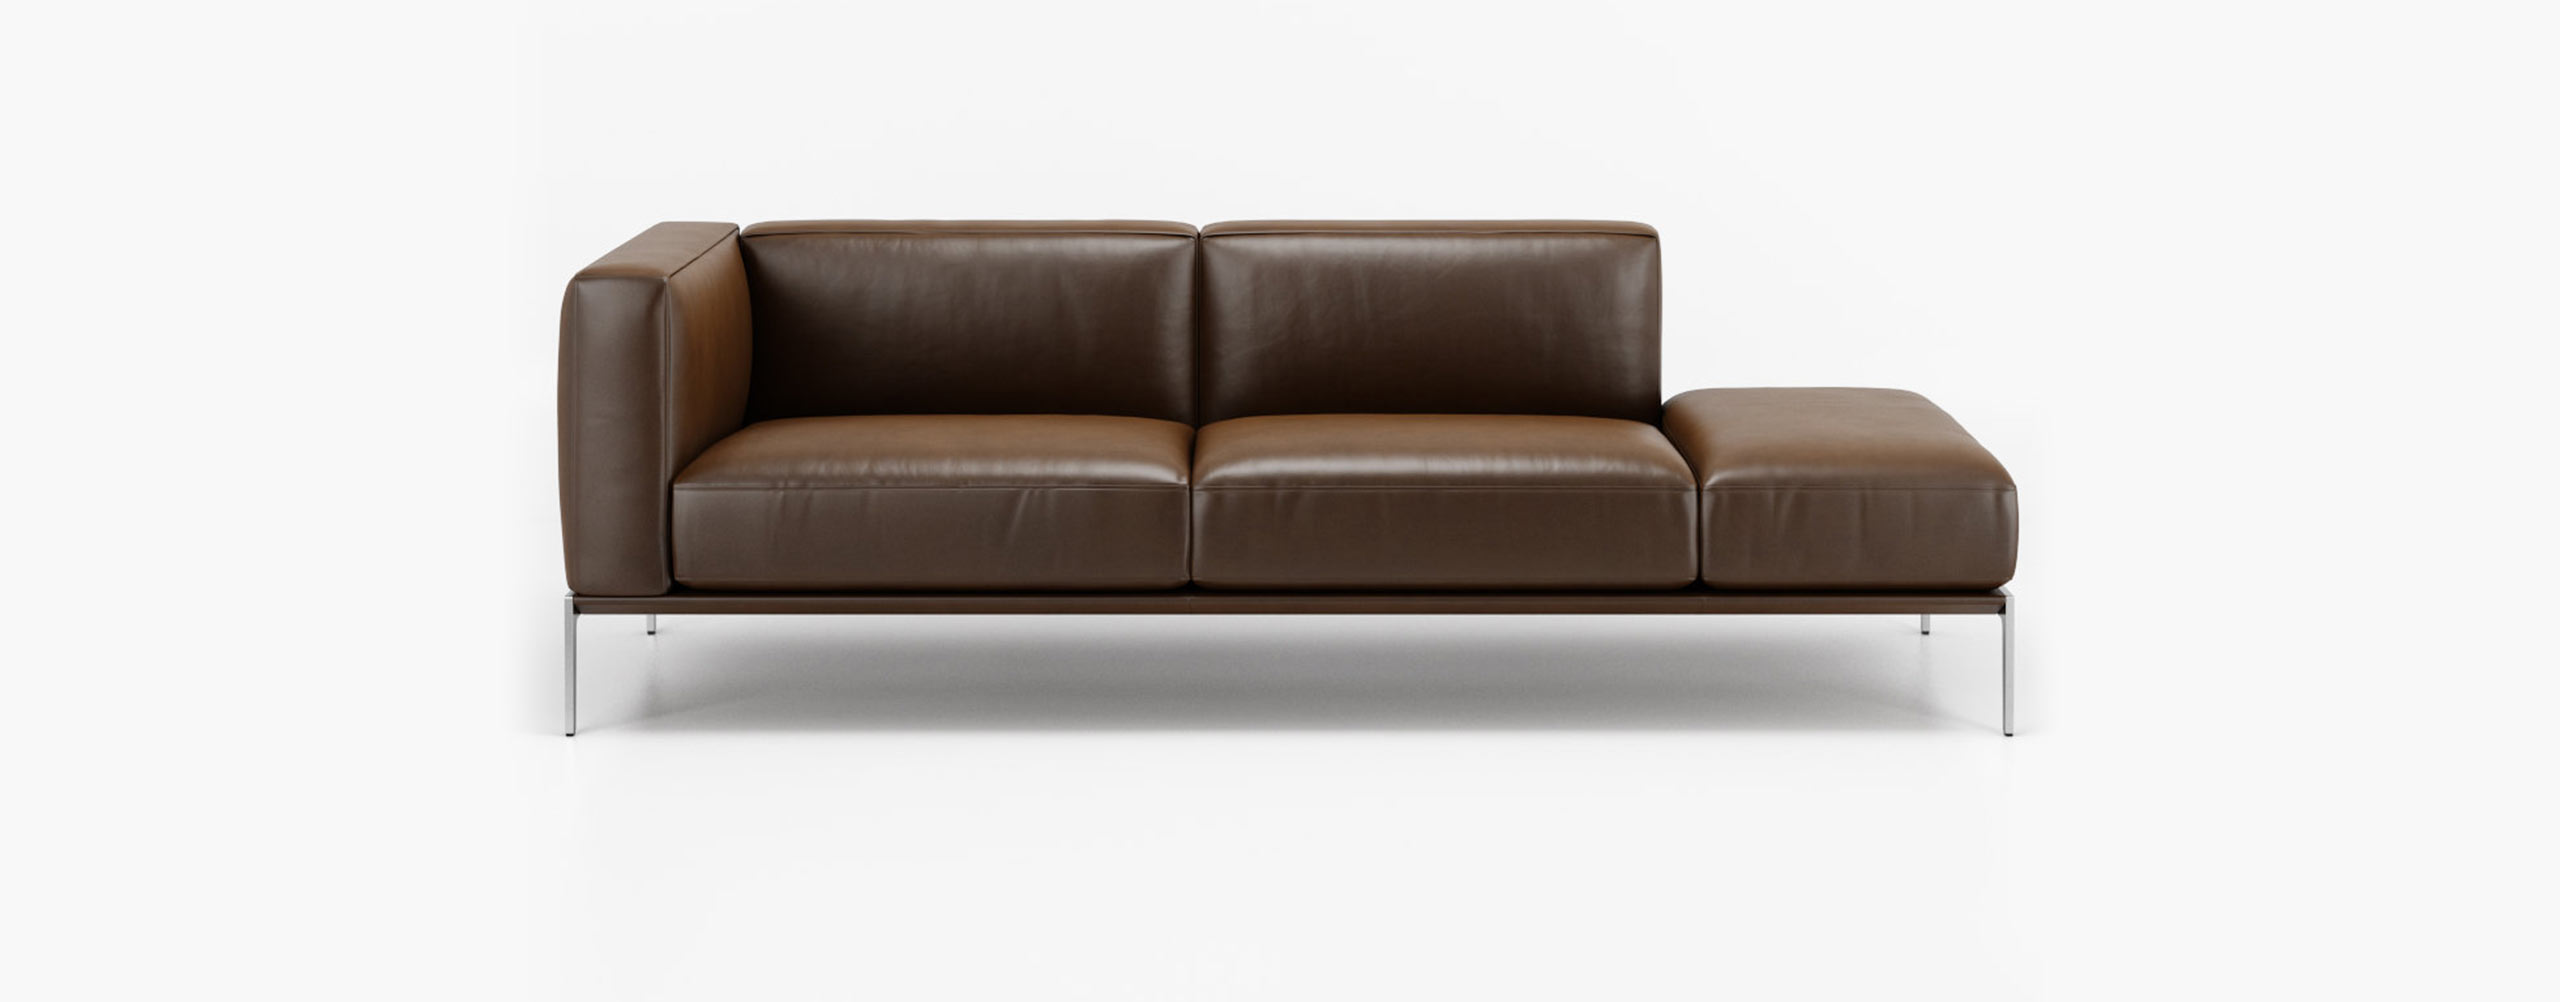 1343 PIU sofa by Intertime - 3d model developed in collaboration with Design Connected